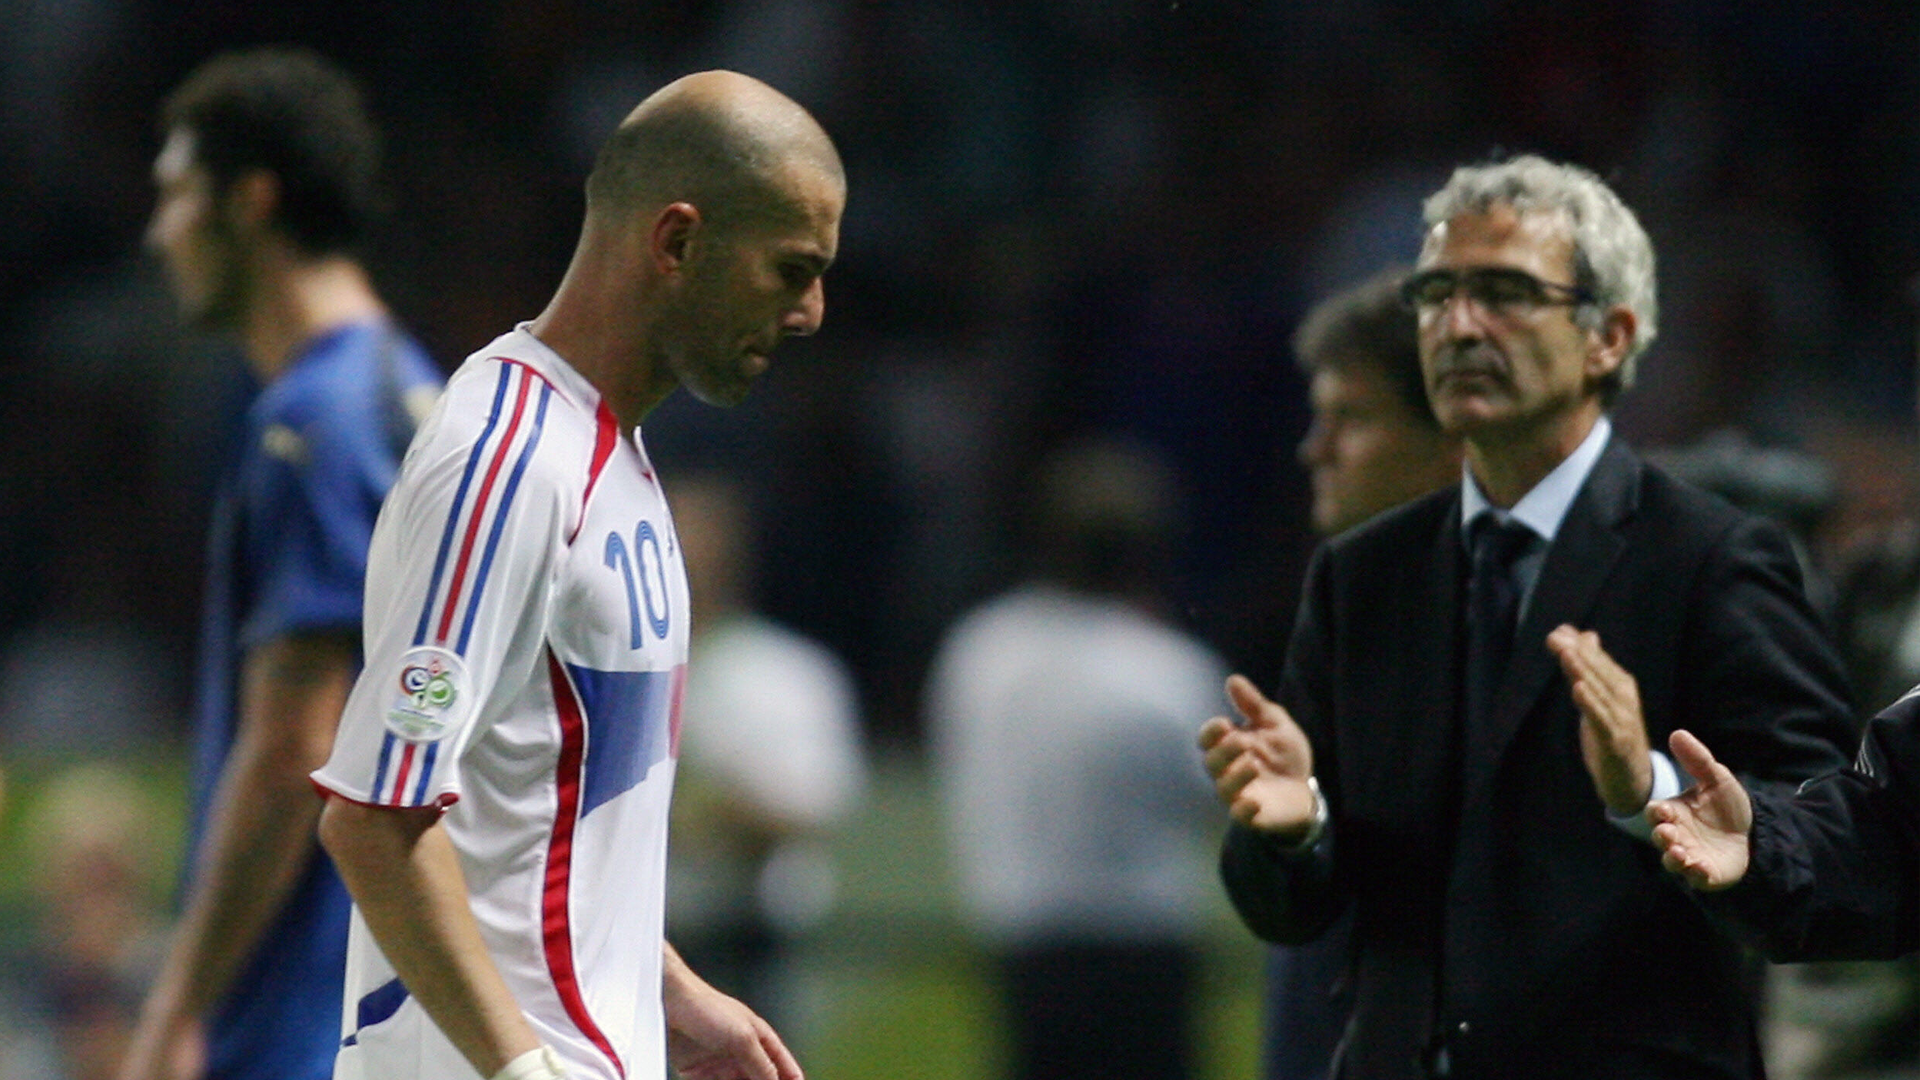 Zinedine Zidane and Raymond Domenech in the World Cup final in 2004